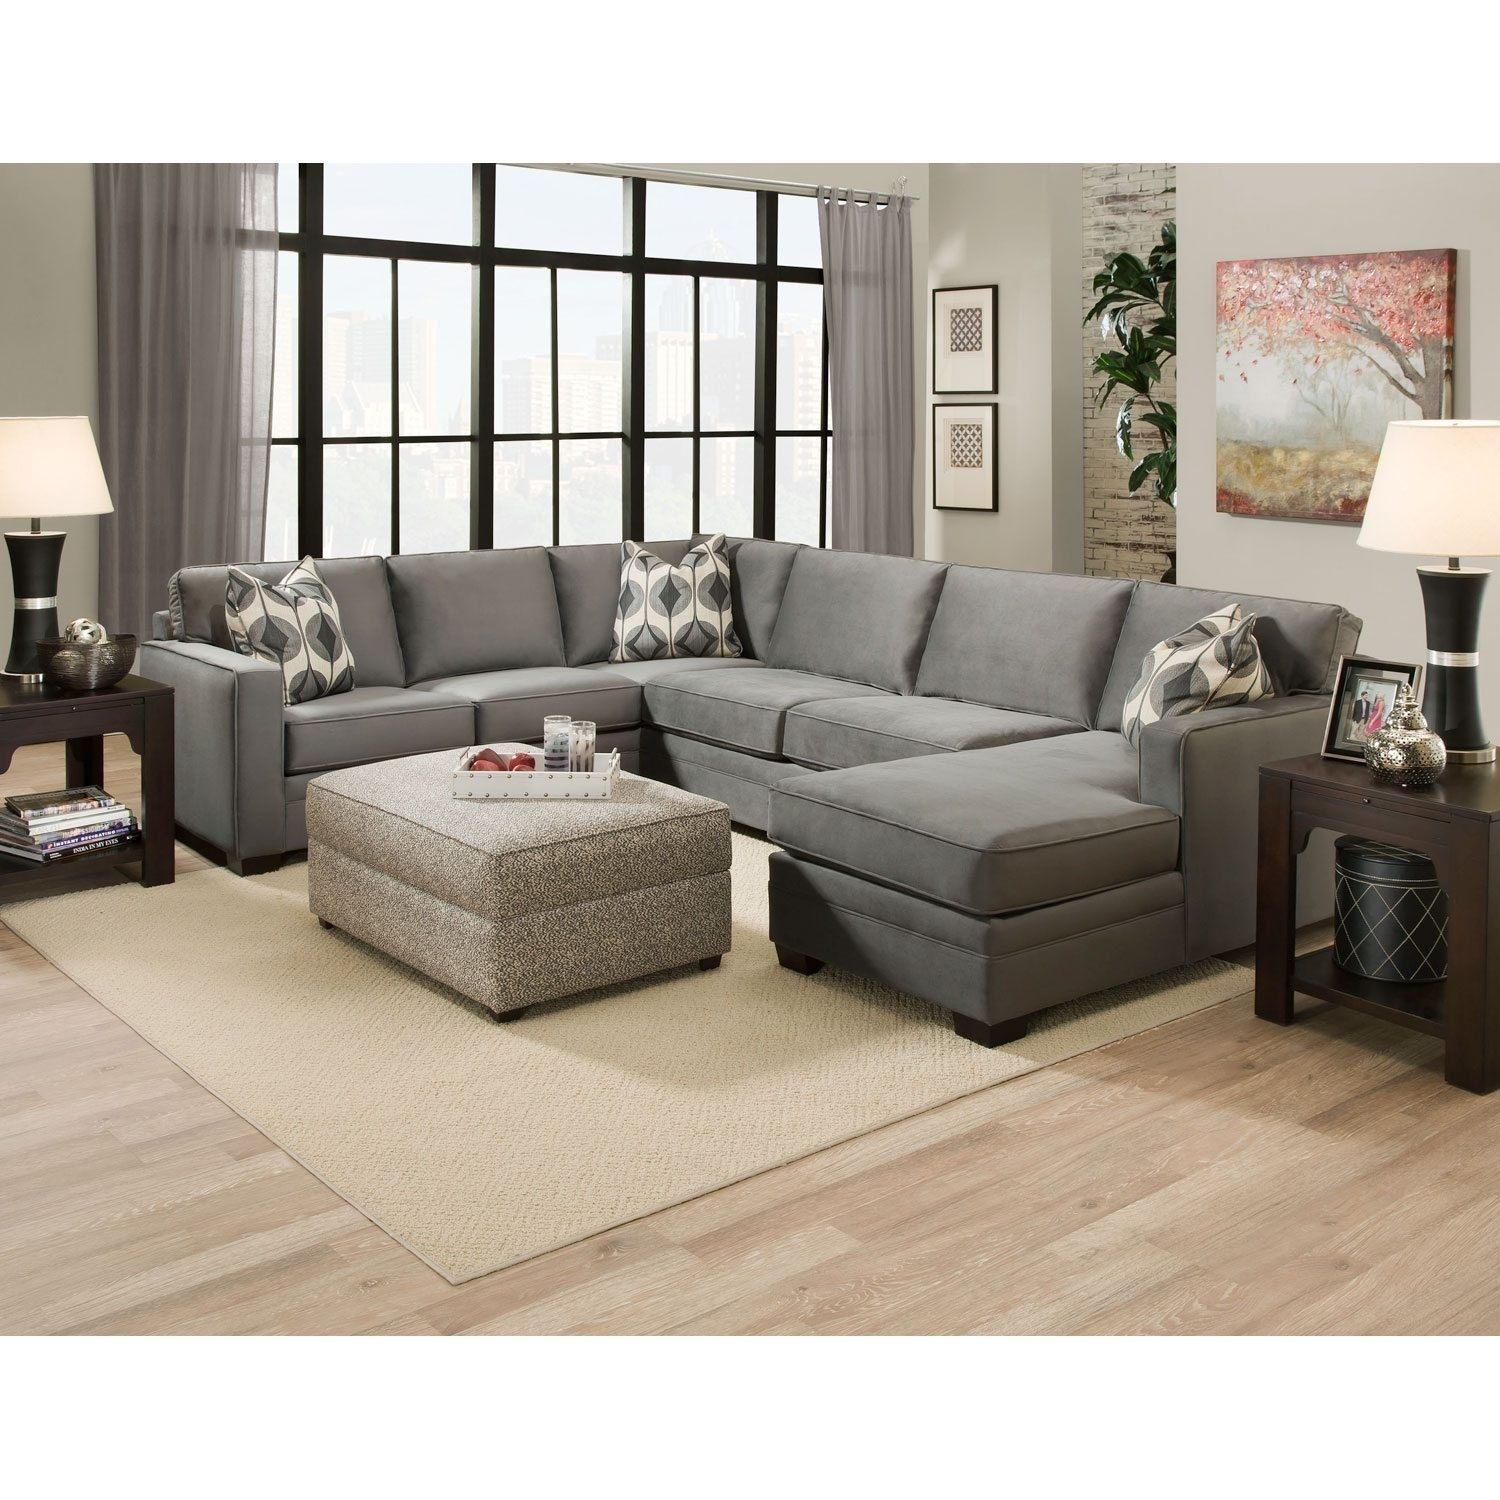 durable sofa brands pet sofas sectional best leather with